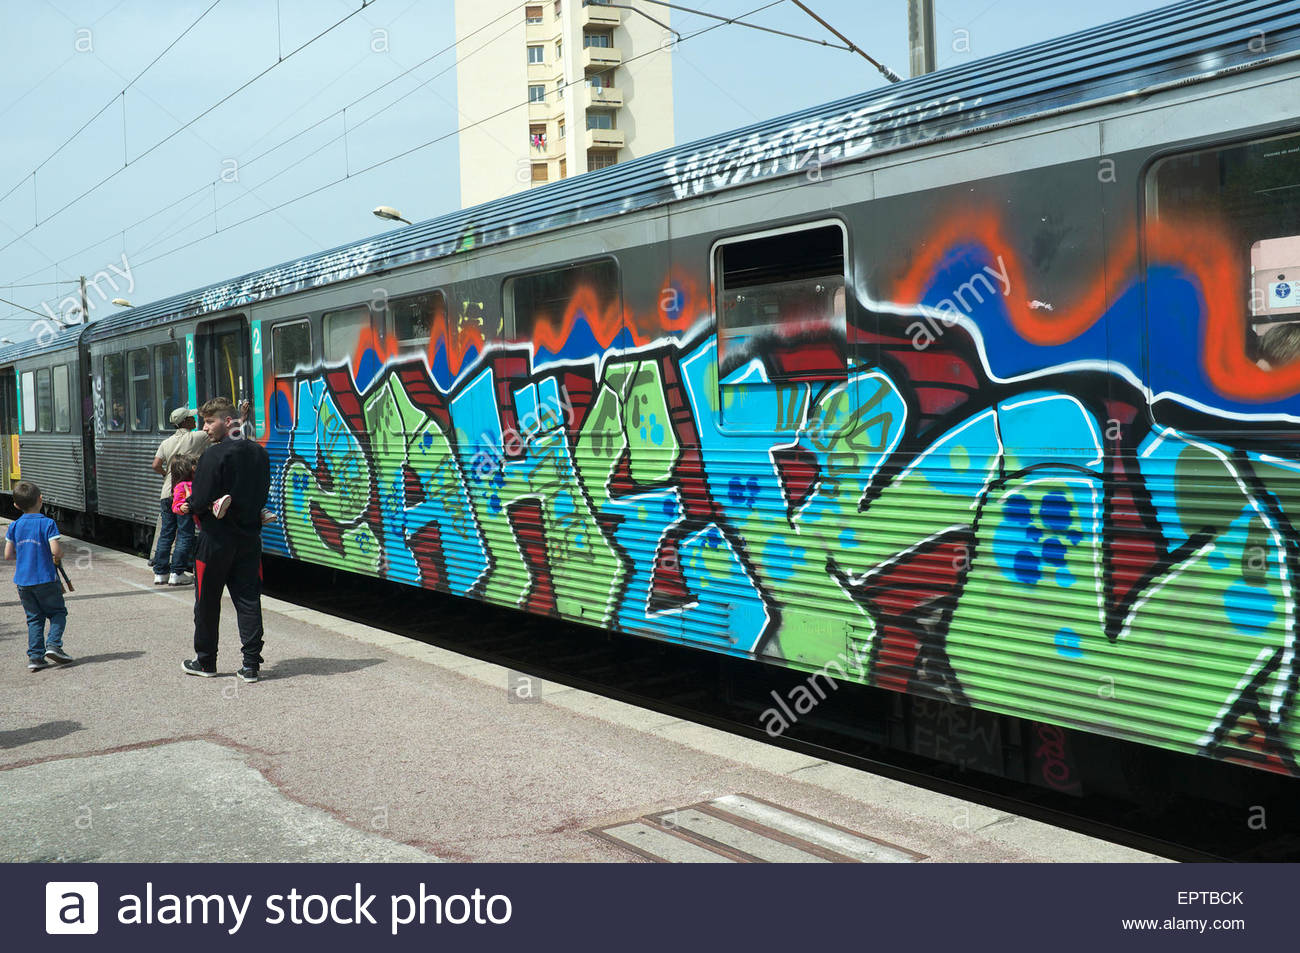 Graffiti covered passenger railway carriage, in public use, on the French TER railway network near Nice, France.Stock Photo